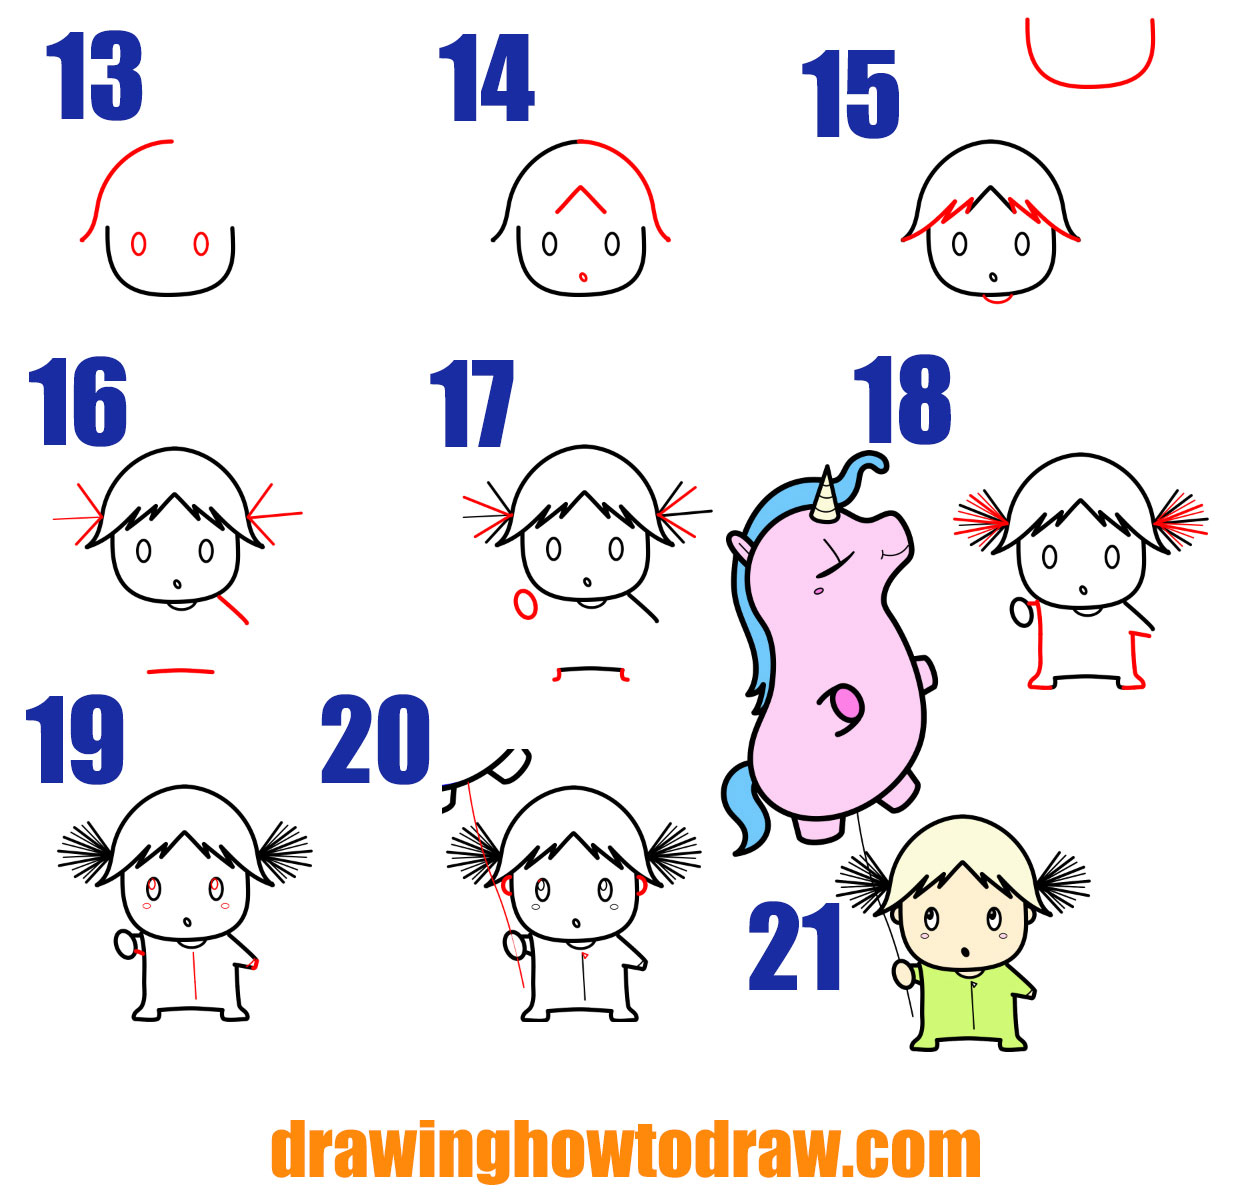 How to Draw a Cute Cartoon (Kawaii) Girl with her Unicorn ...